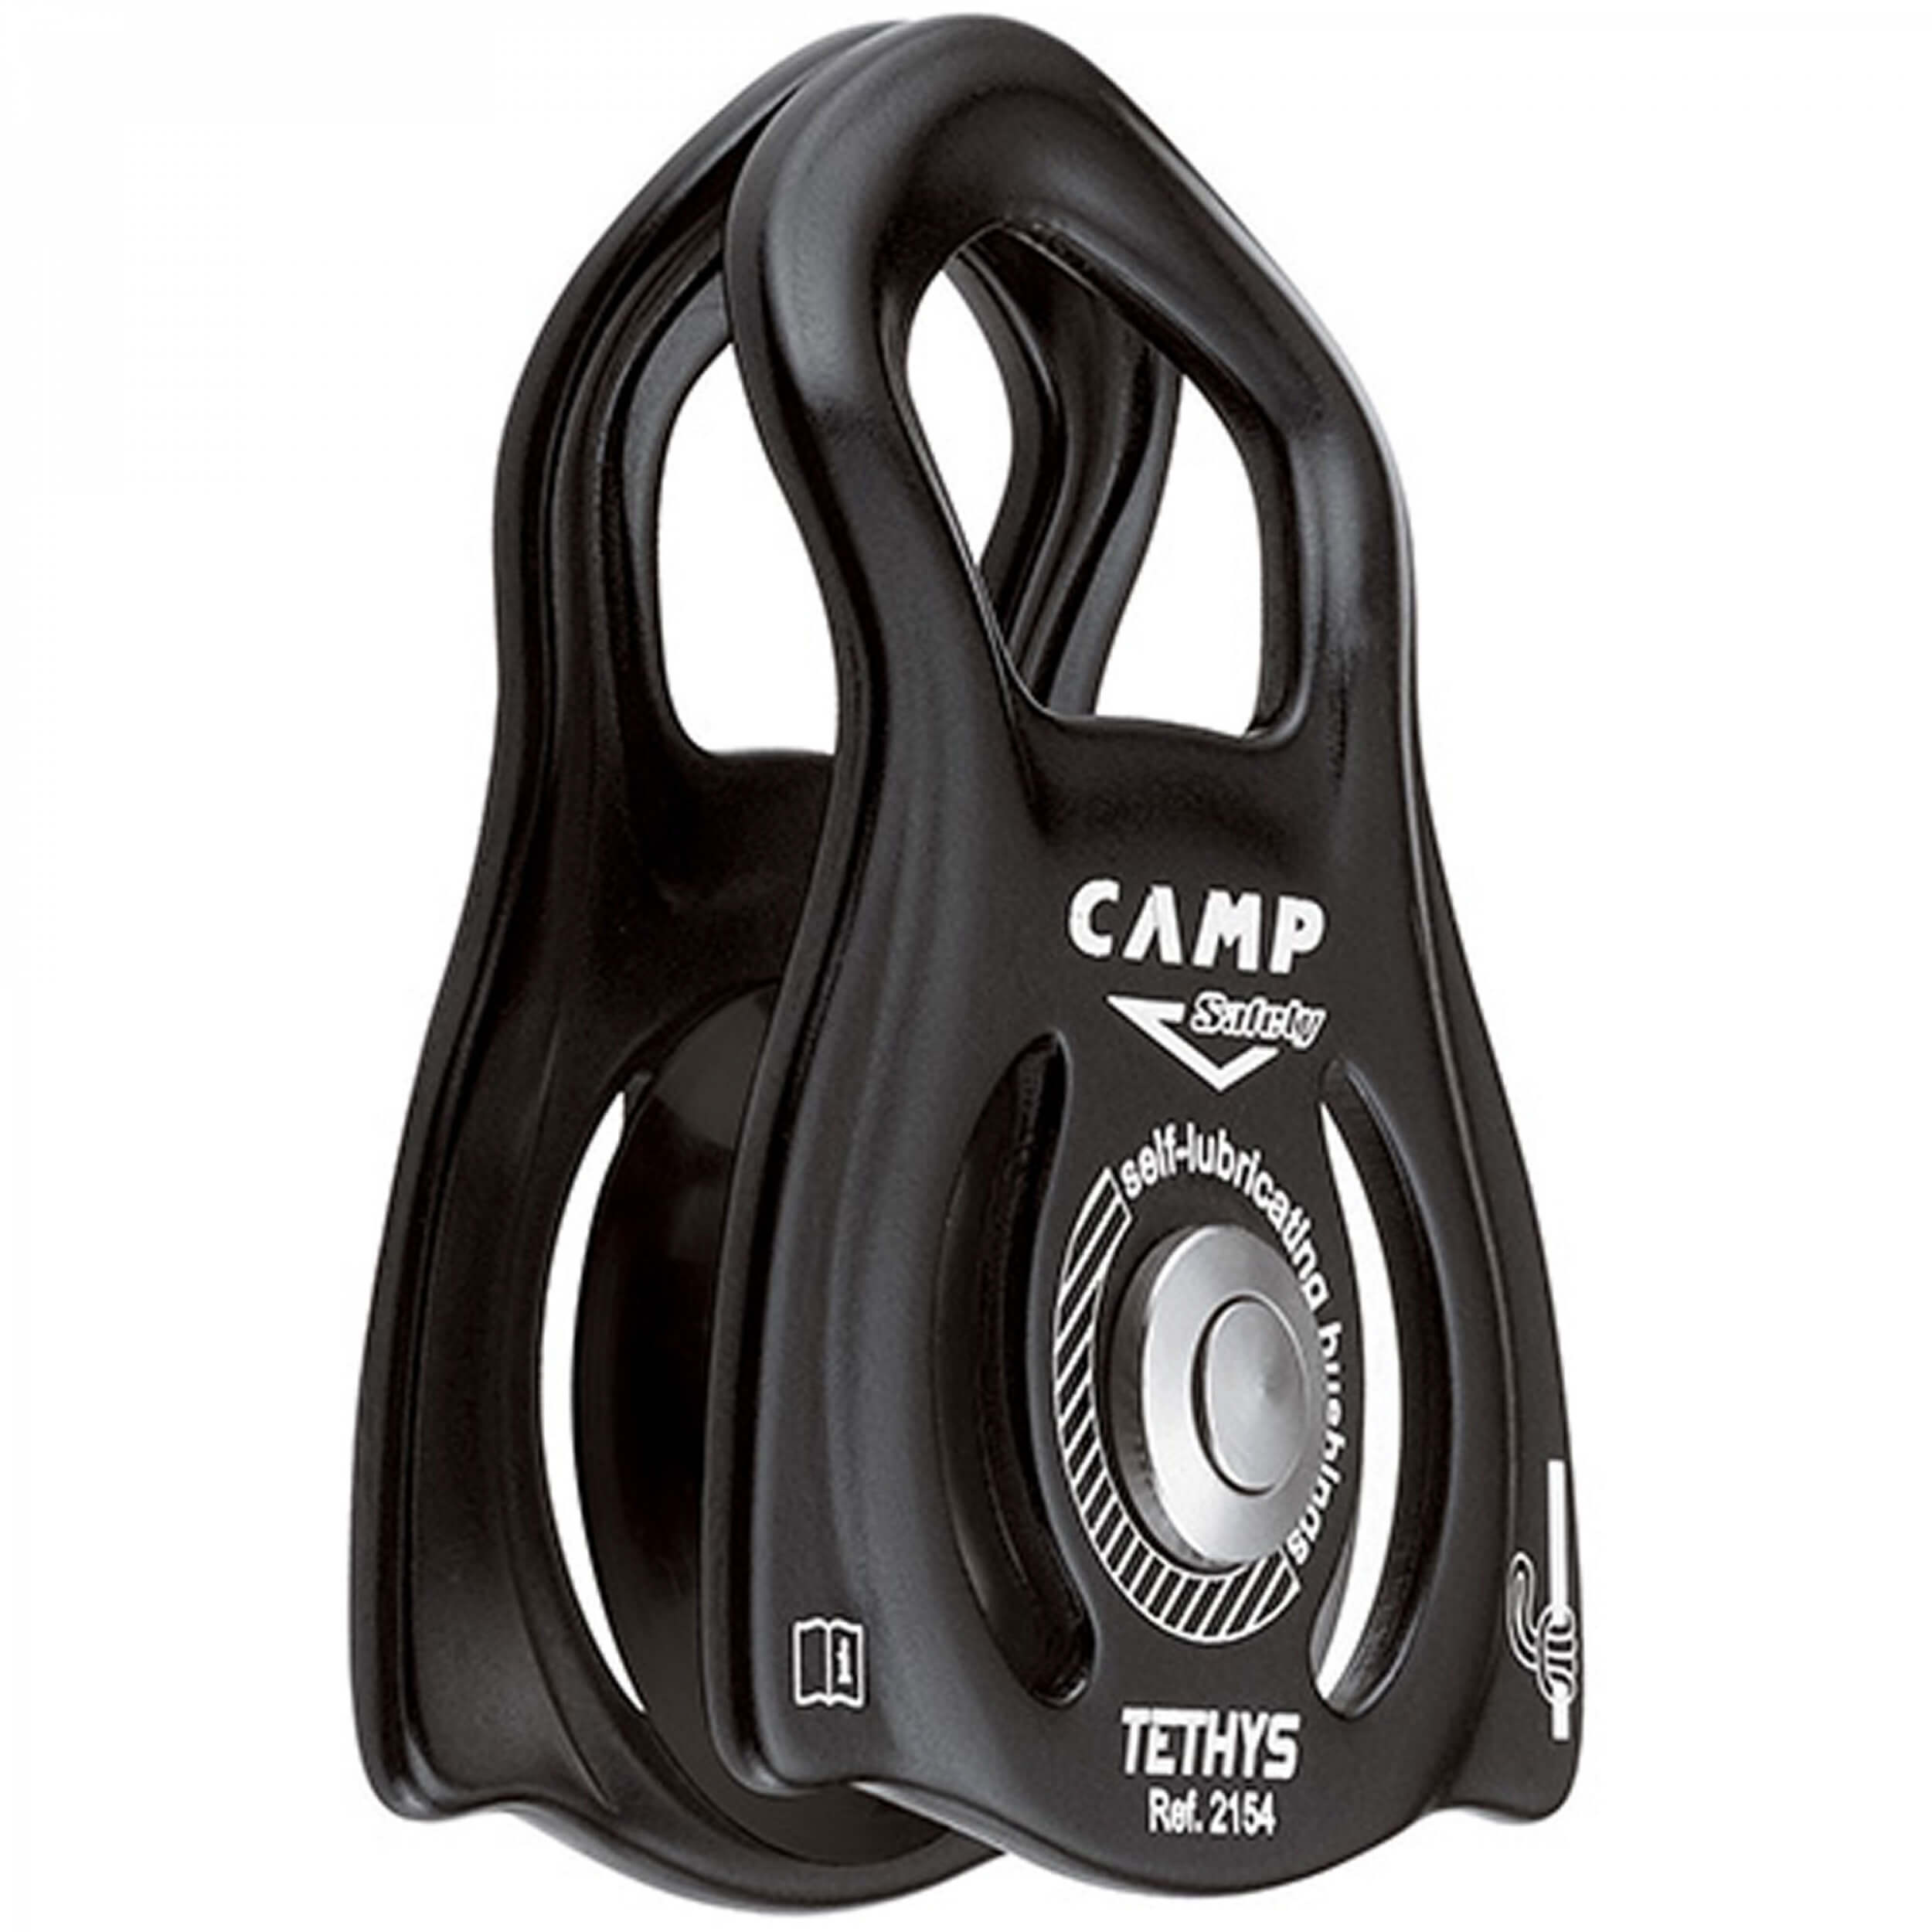 CAMP Tethys Black - Seilrolle